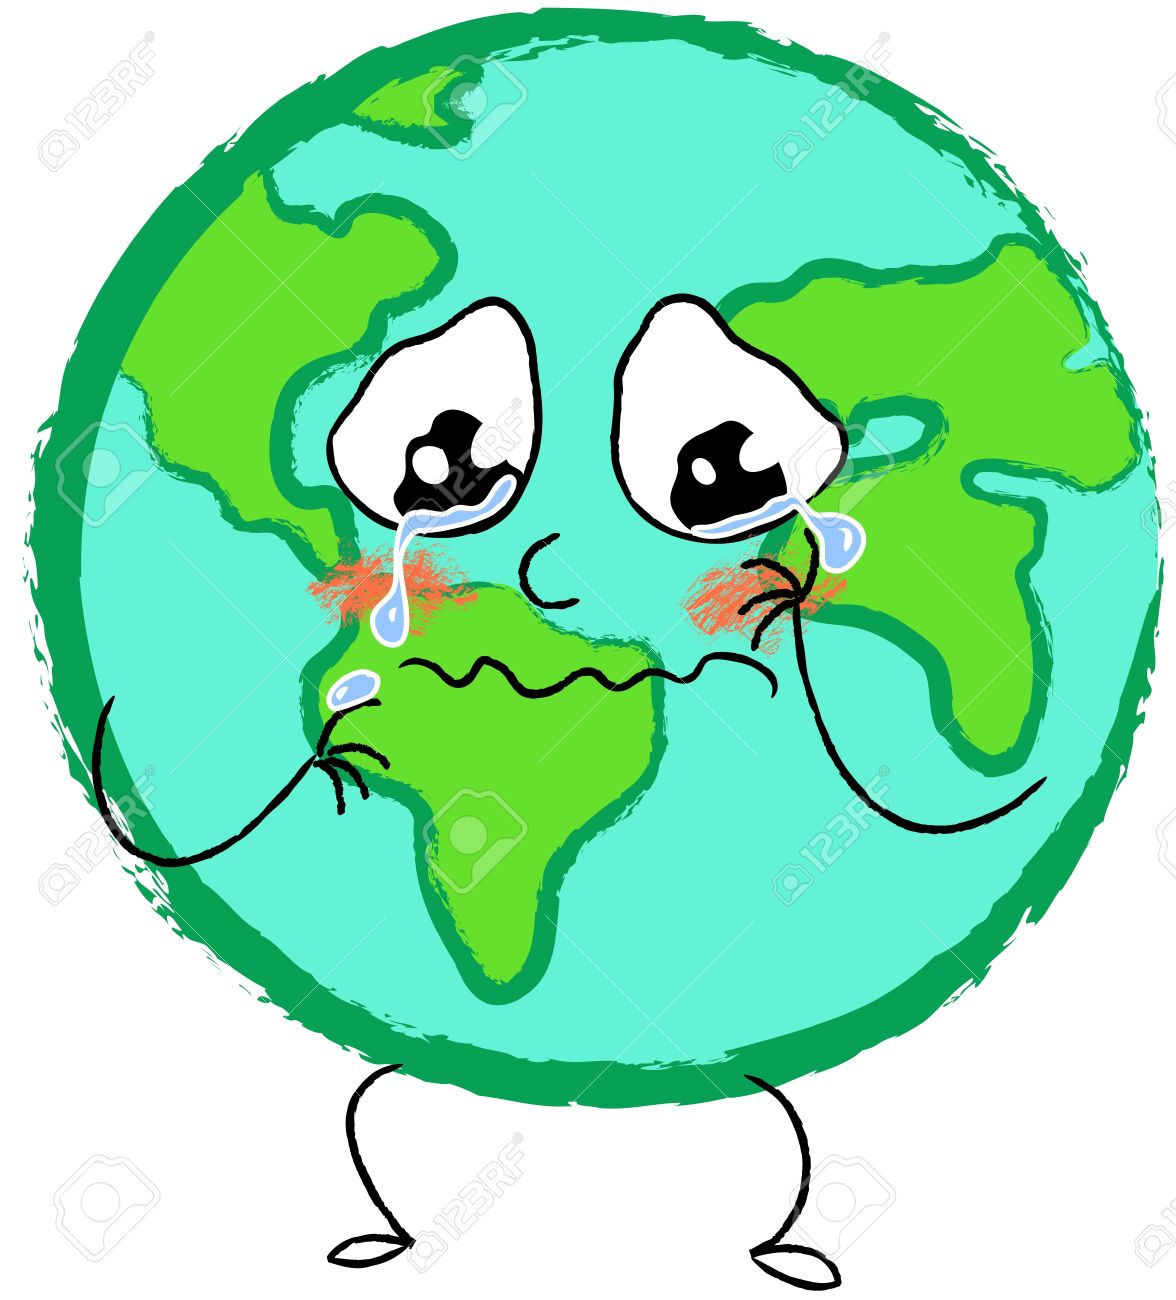 Crying Sad Planet Earth Stock Photo, Picture And Royalty Free.